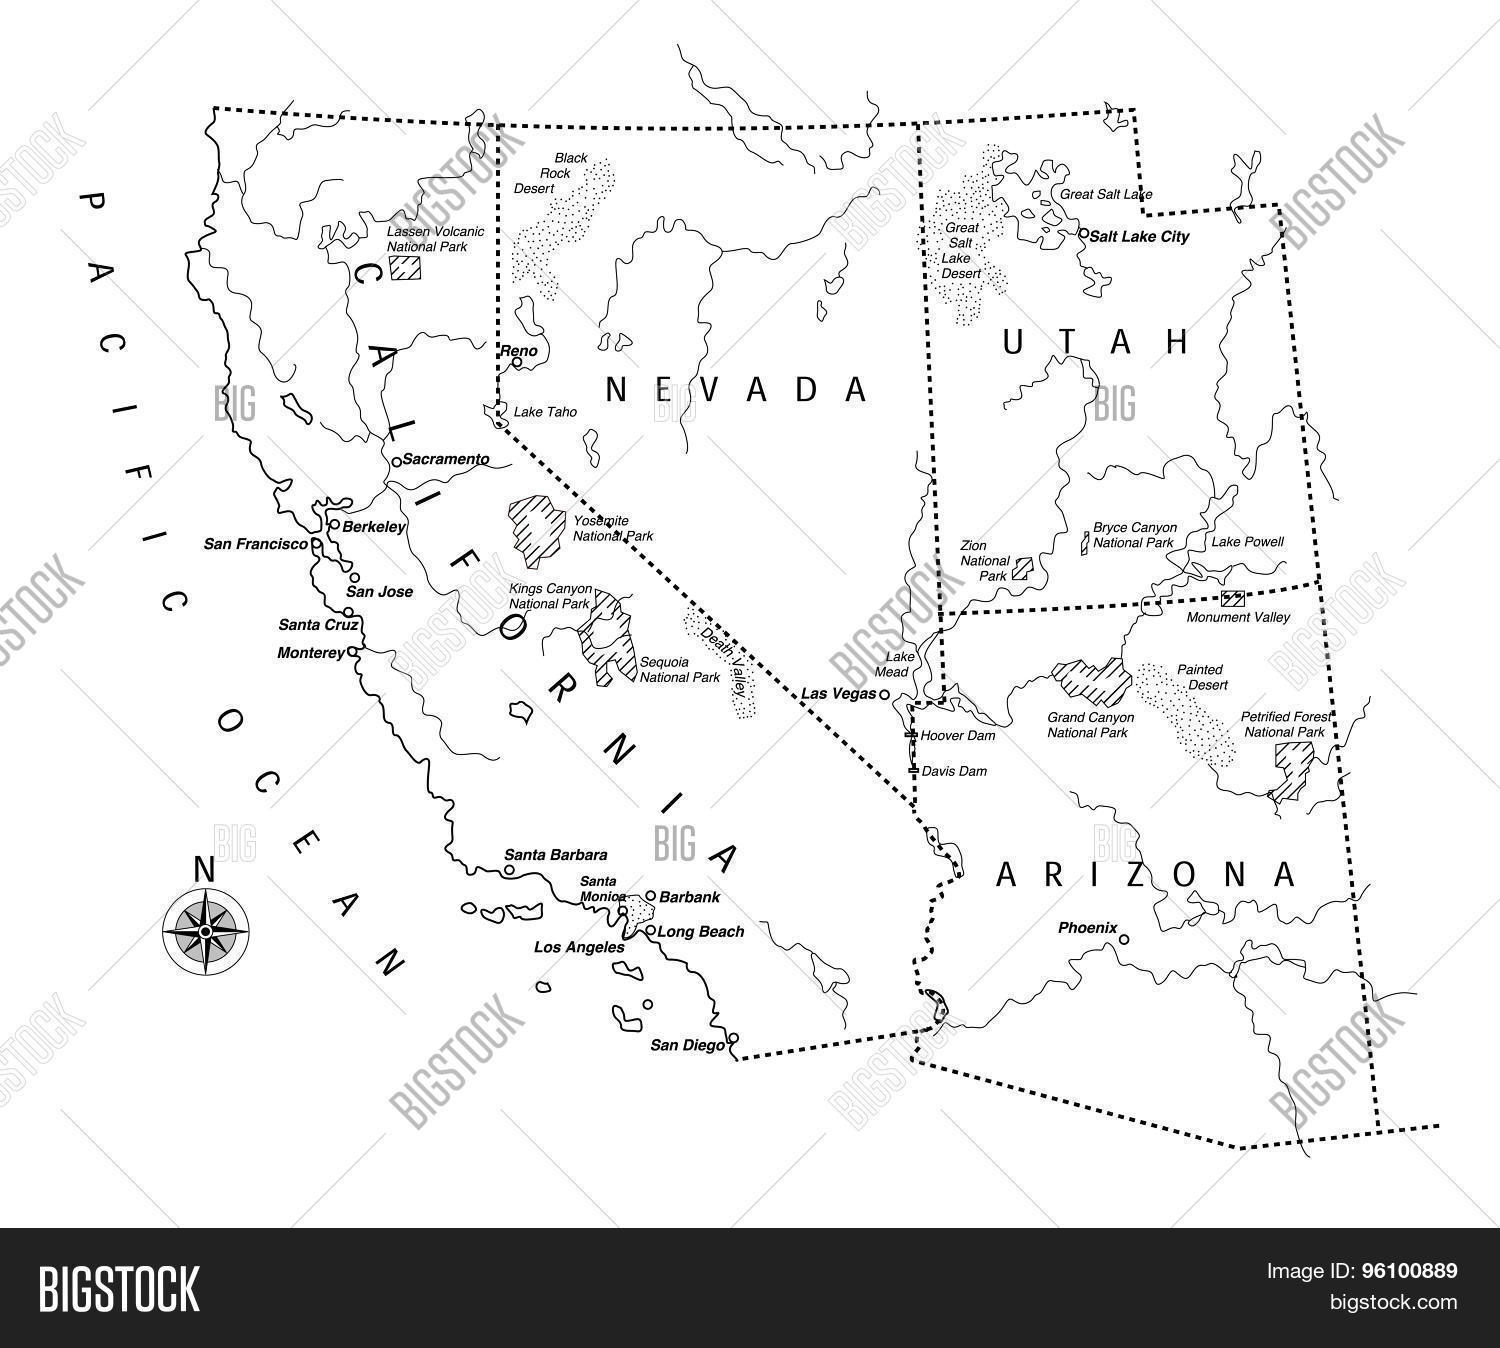 Us State Map Vector & Photo (Free Trial) | Bigstock